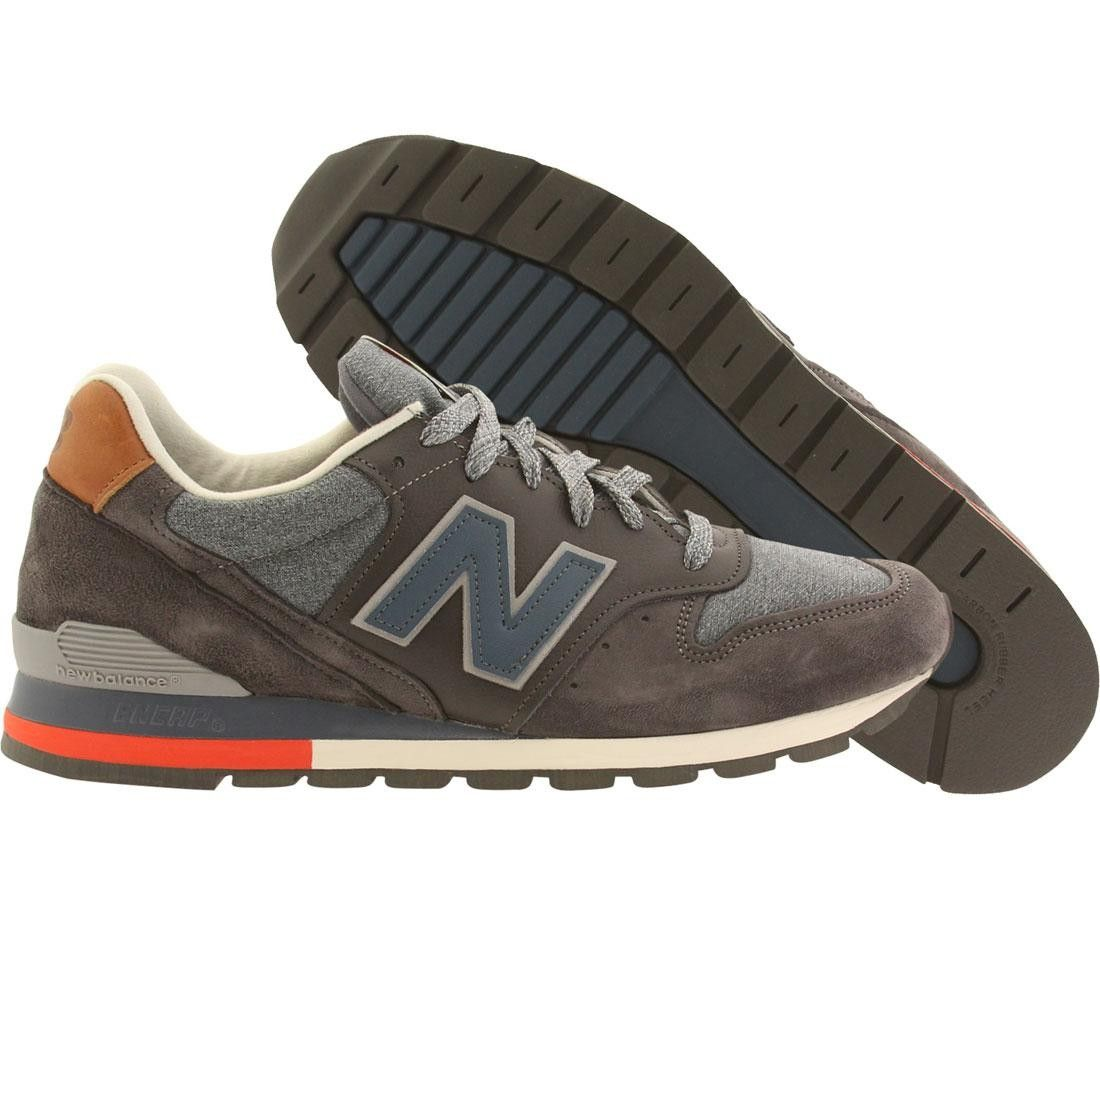 New Balance 996 Distinct Ski Retro - Gray / Chambray / Red balance sneaker,new  balance for sale,wide range, clearance new balance shoes USA Sale Online ...